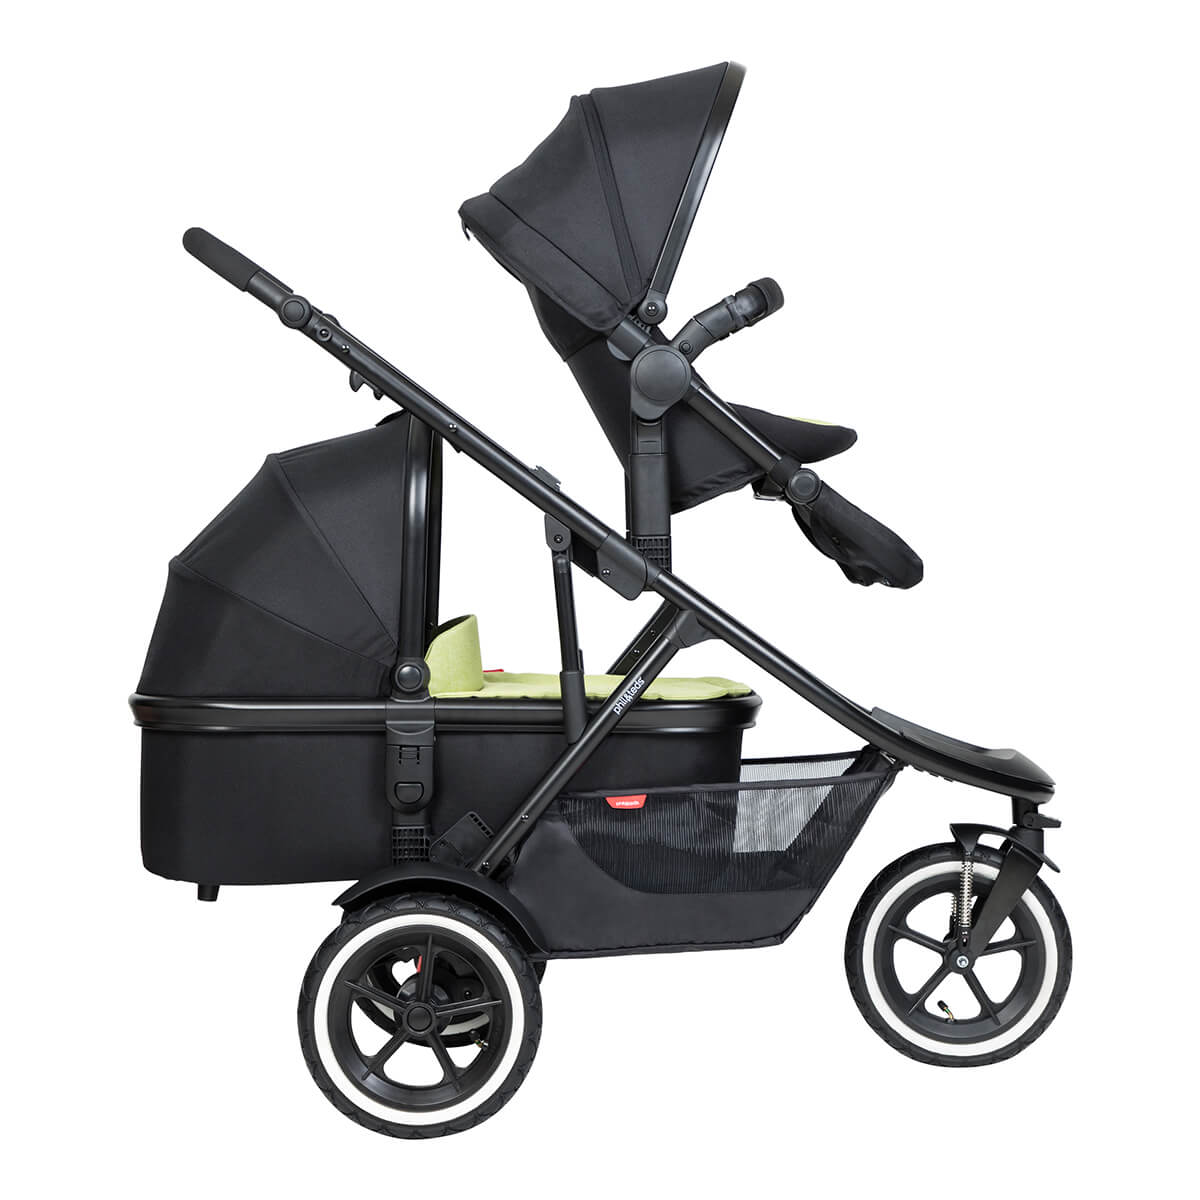 https://cdn.accentuate.io/4513462419552/19440099688632/philteds-sport-buggy-with-double-kit-extended-clip-and-snug-carrycot-side-view-v1626486514798.jpg?1200x1200